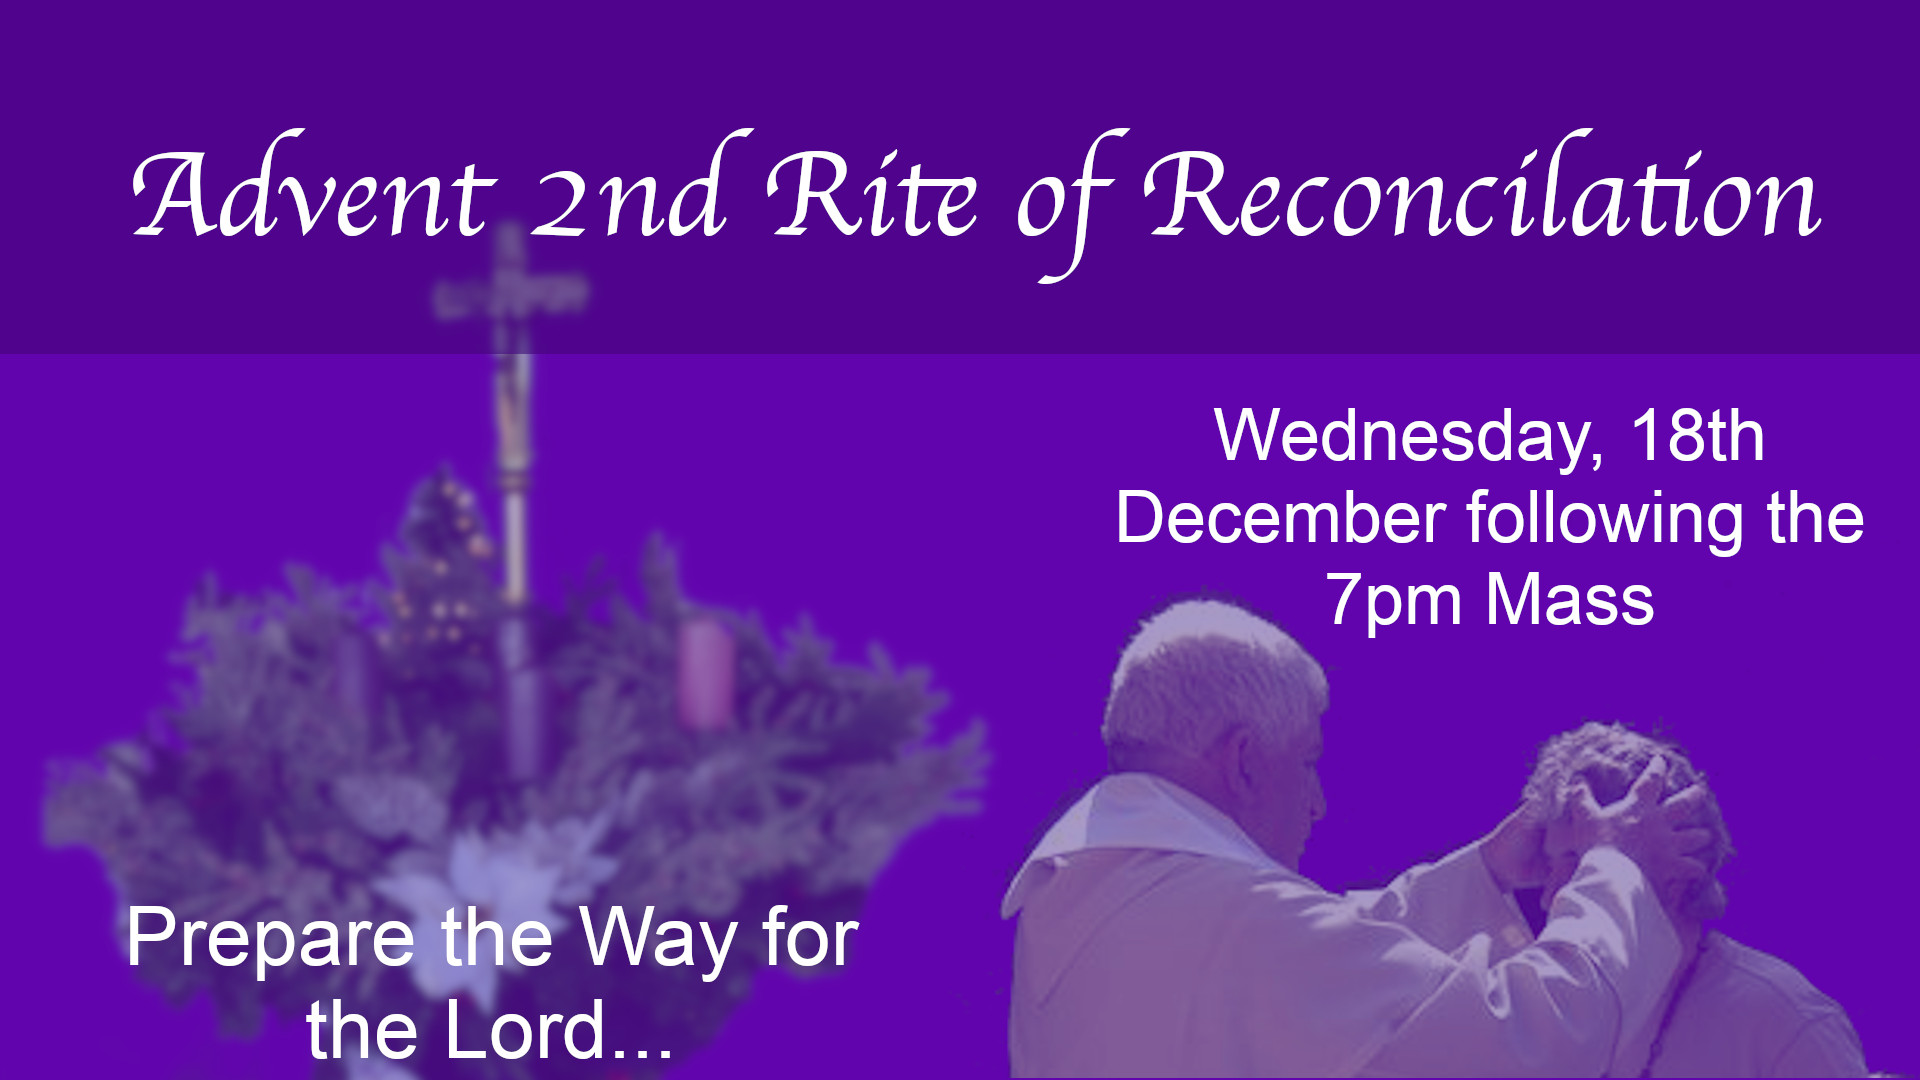 2nd RITE OF RECONCILIATION Wednesday 18 DECEMBER 2019 After 7:00pm Mass